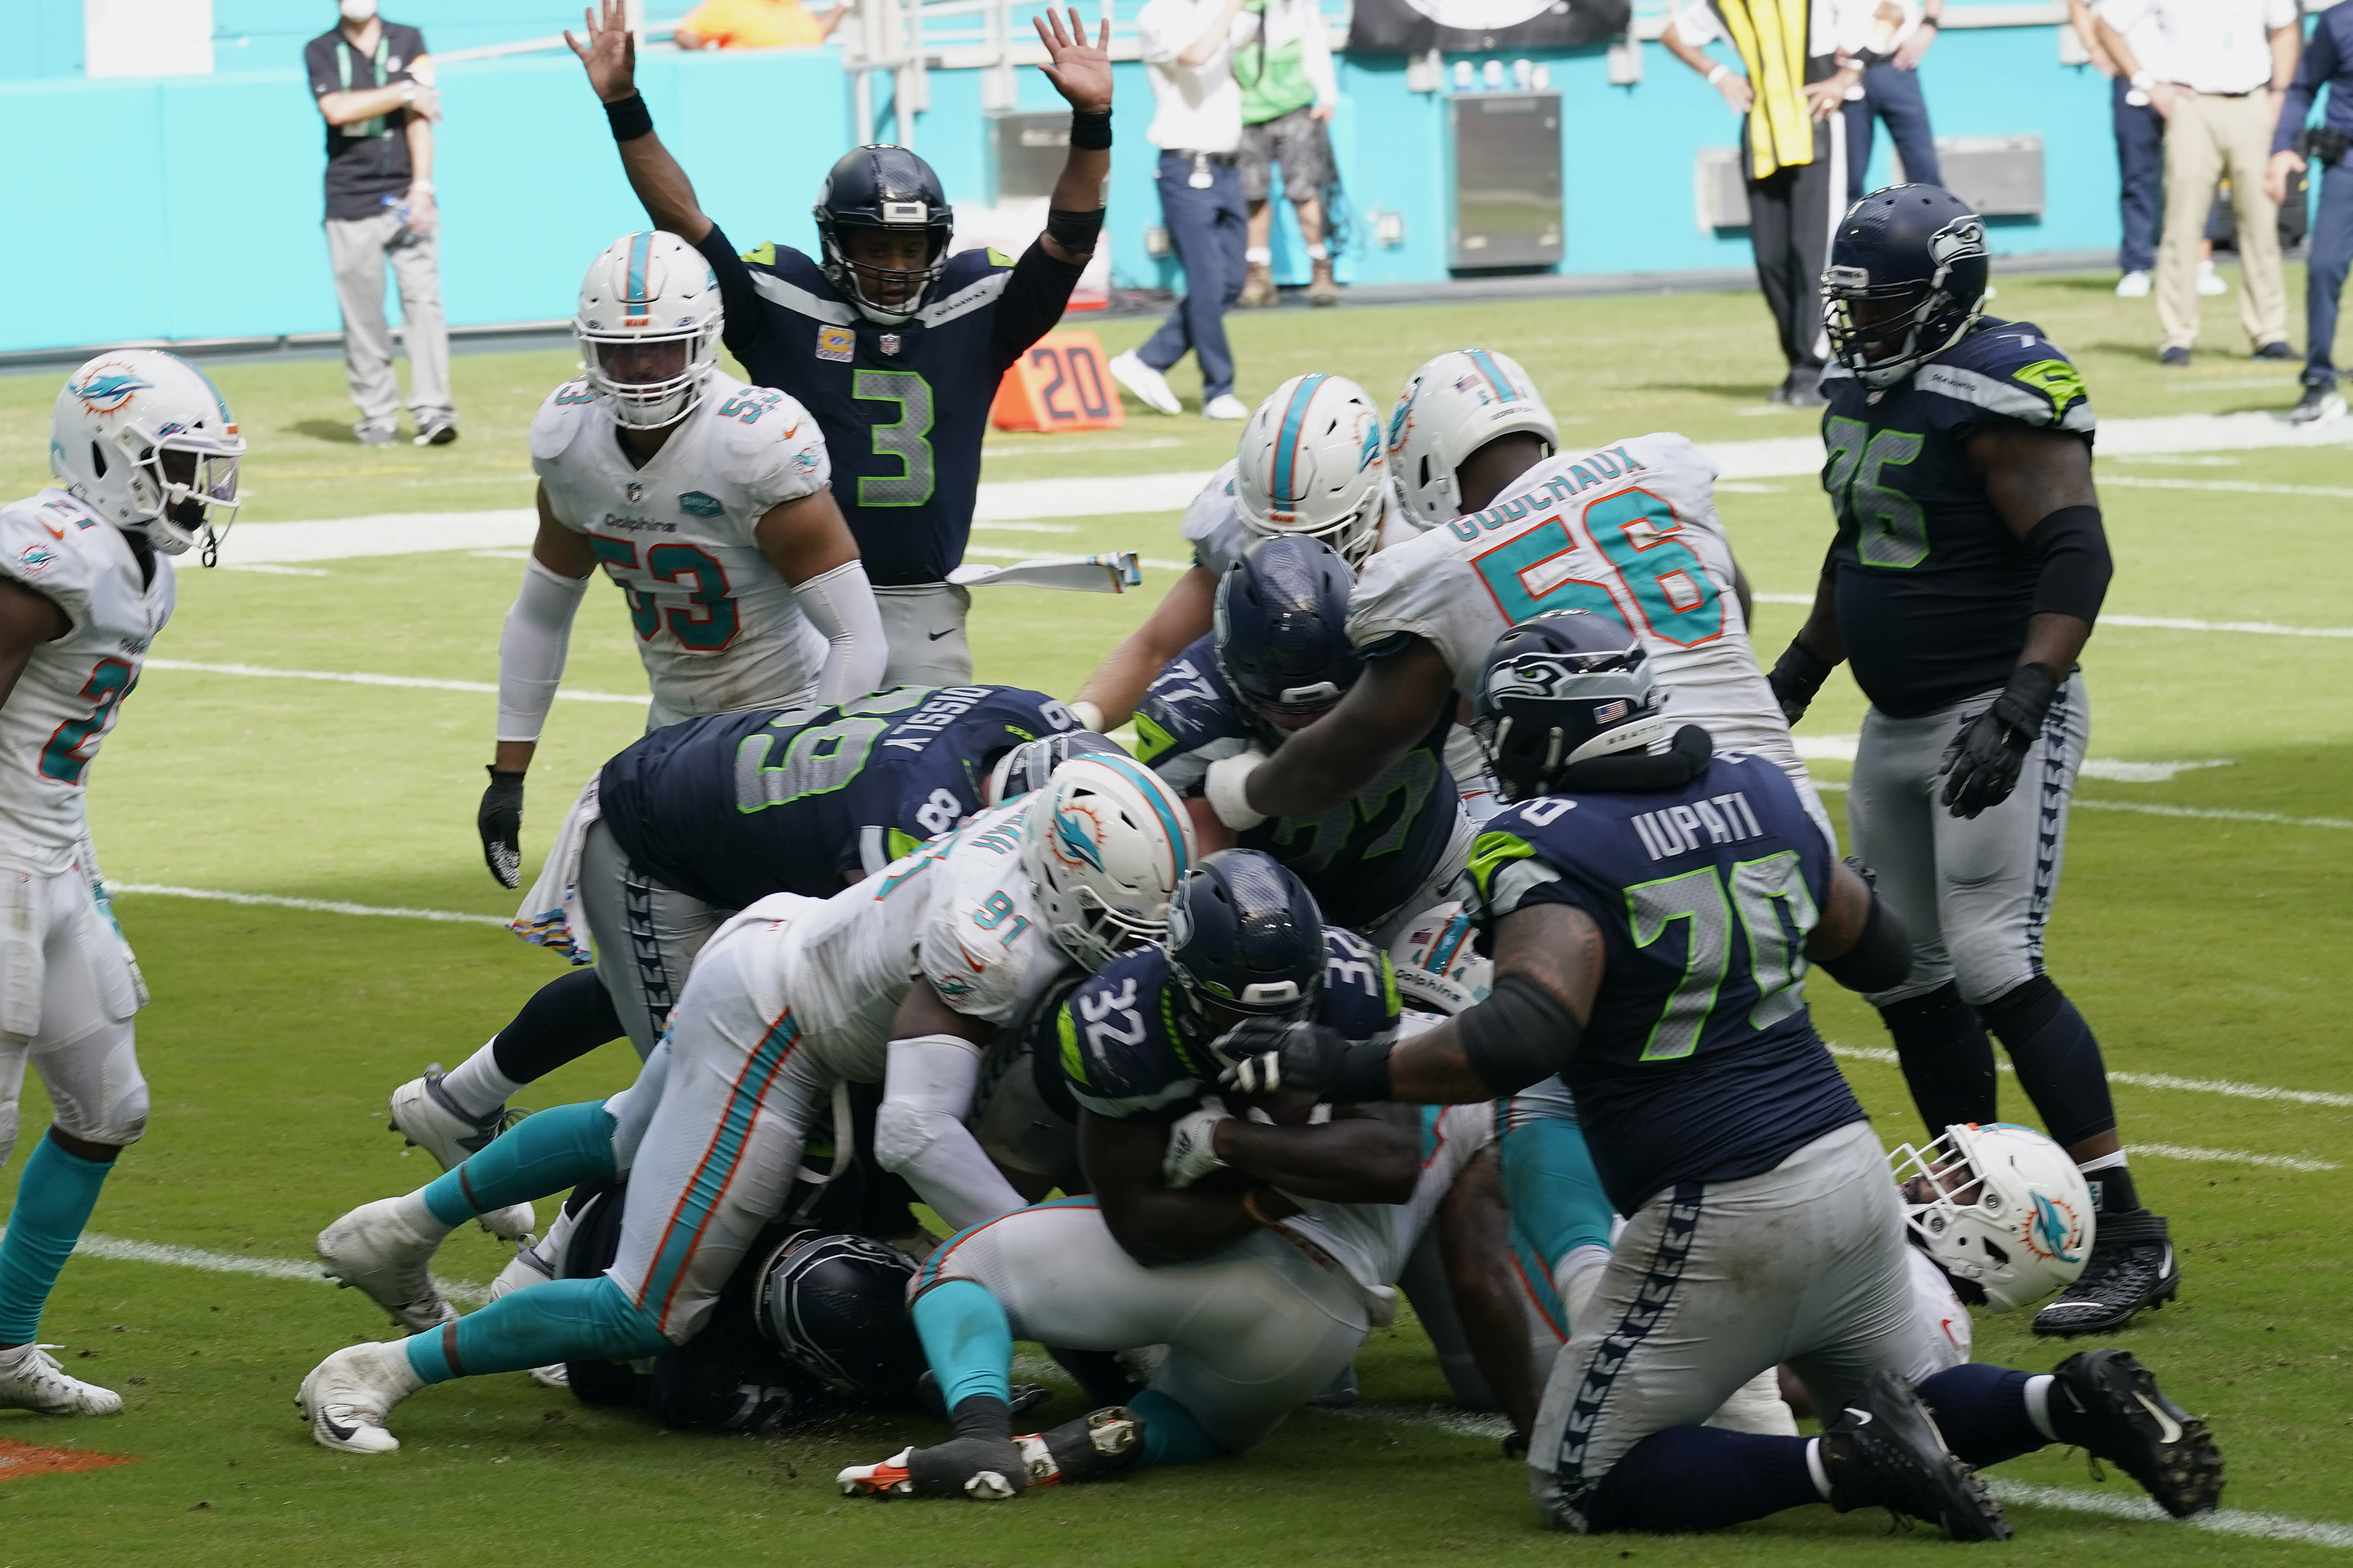 Seattle Seahawks running back Chris Carson (32) scores a touchdown during the second half of an NFL football game against the Miami Dolphins, Sunday, Oct. 4, 2020, in Miami Gardens, Fla. The Seahawks defeated the Dolphins 31-23.(AP Photo/Lynne Sladky)